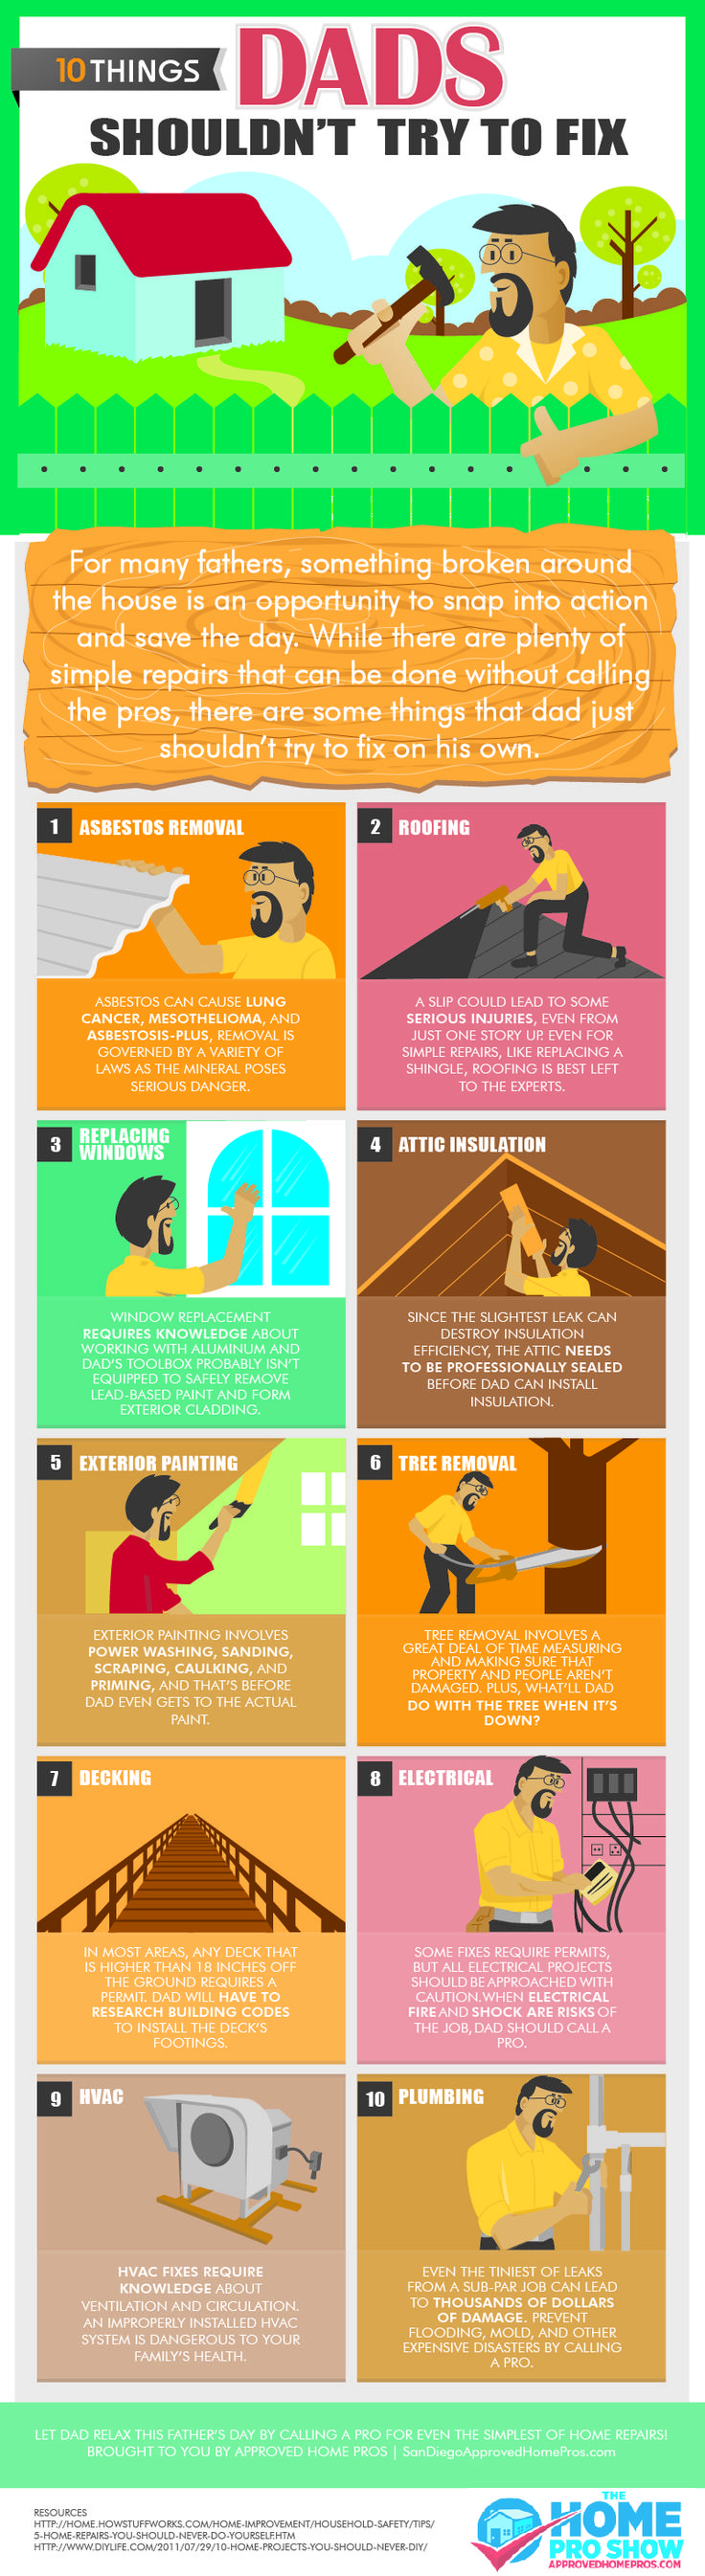 For many fathers, something broken around the house is an opportunity to snap into action and save the day. While there are plenty of simple repairs that can be done without calling the pros, there are some things that dads just shouldn't try to fix on their own such as roofing or plumbing. Read our infographic for other seemingly easy tasks that fathers shouldn't do!